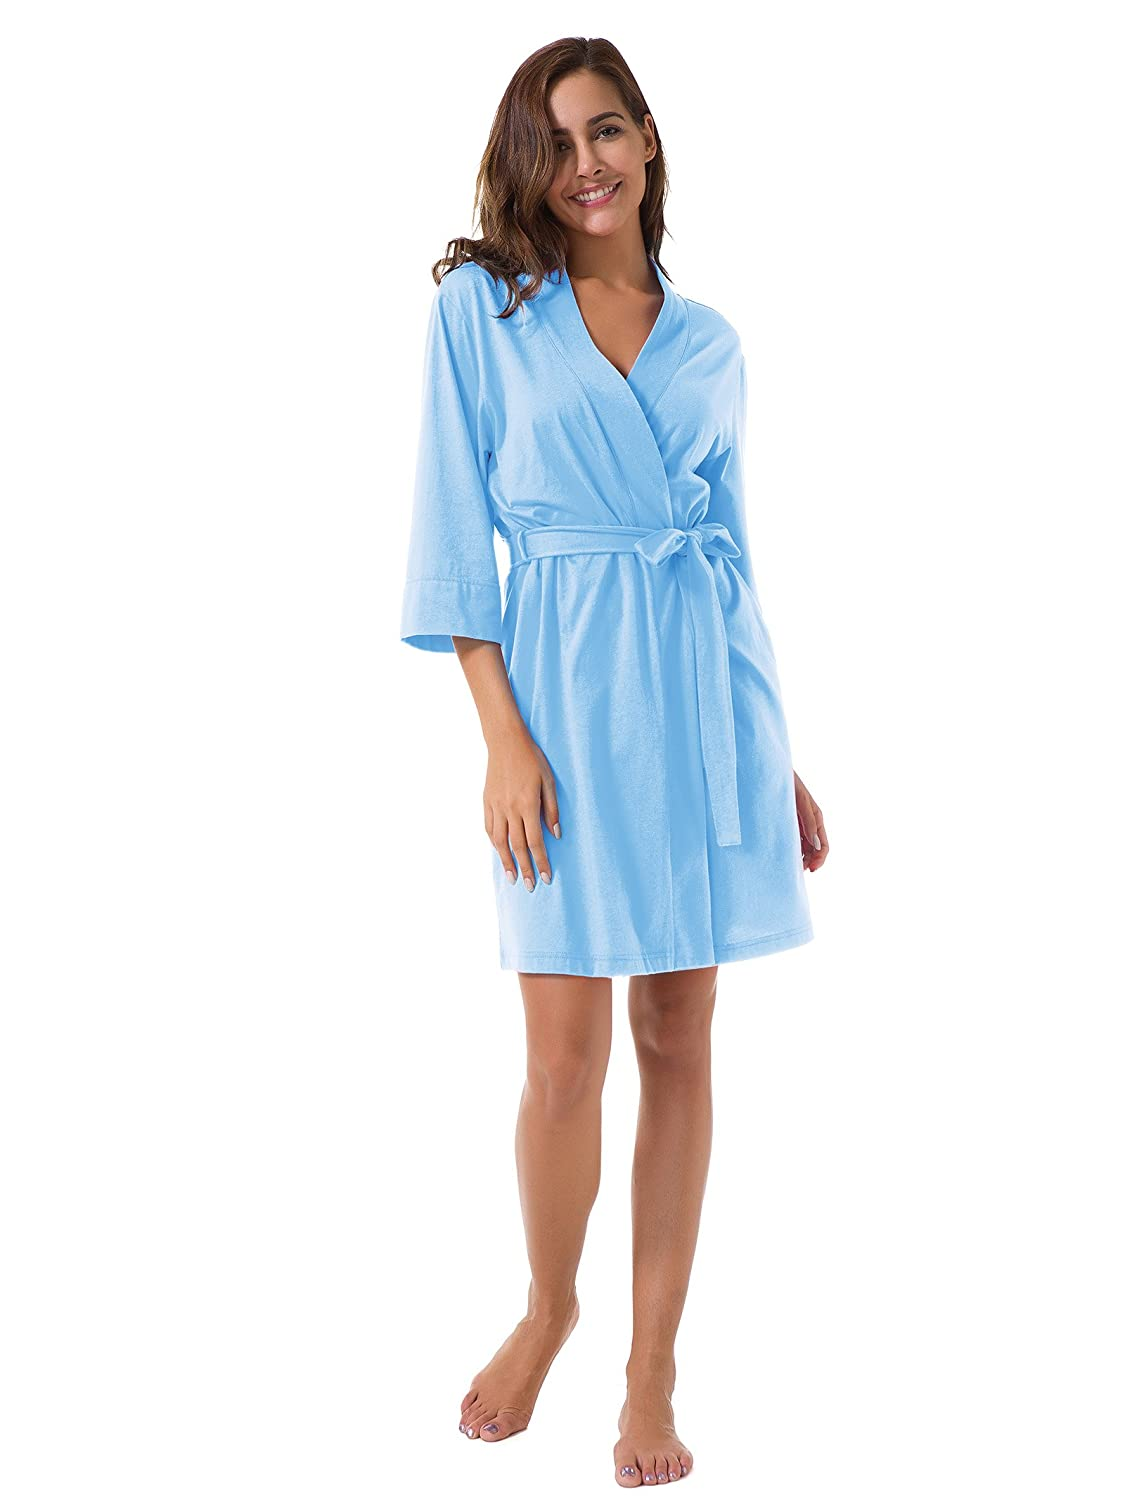 SIORO Womens Cotton Robe Soft Kimono Robes Knit Bathrobe Loungewear  Sleepwear Short fa65d022f